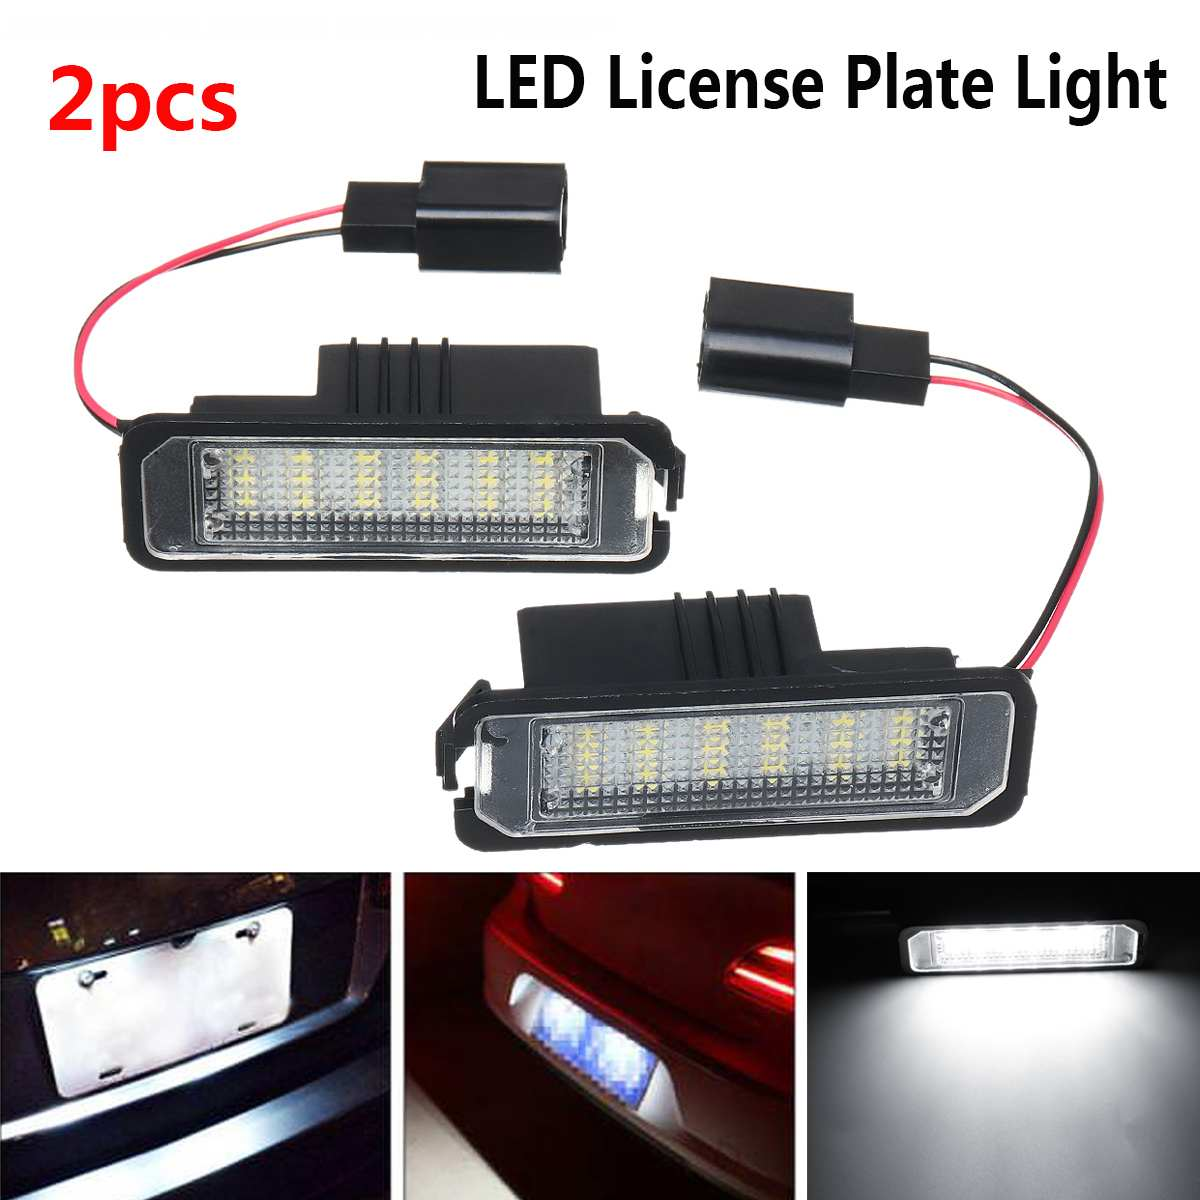 2Pcs 12V 5W LED Number License Plate Light Lamps for VW GOLF 4 6 Polo 9N for Passat Car License Plate Lights Exterior Access(China)